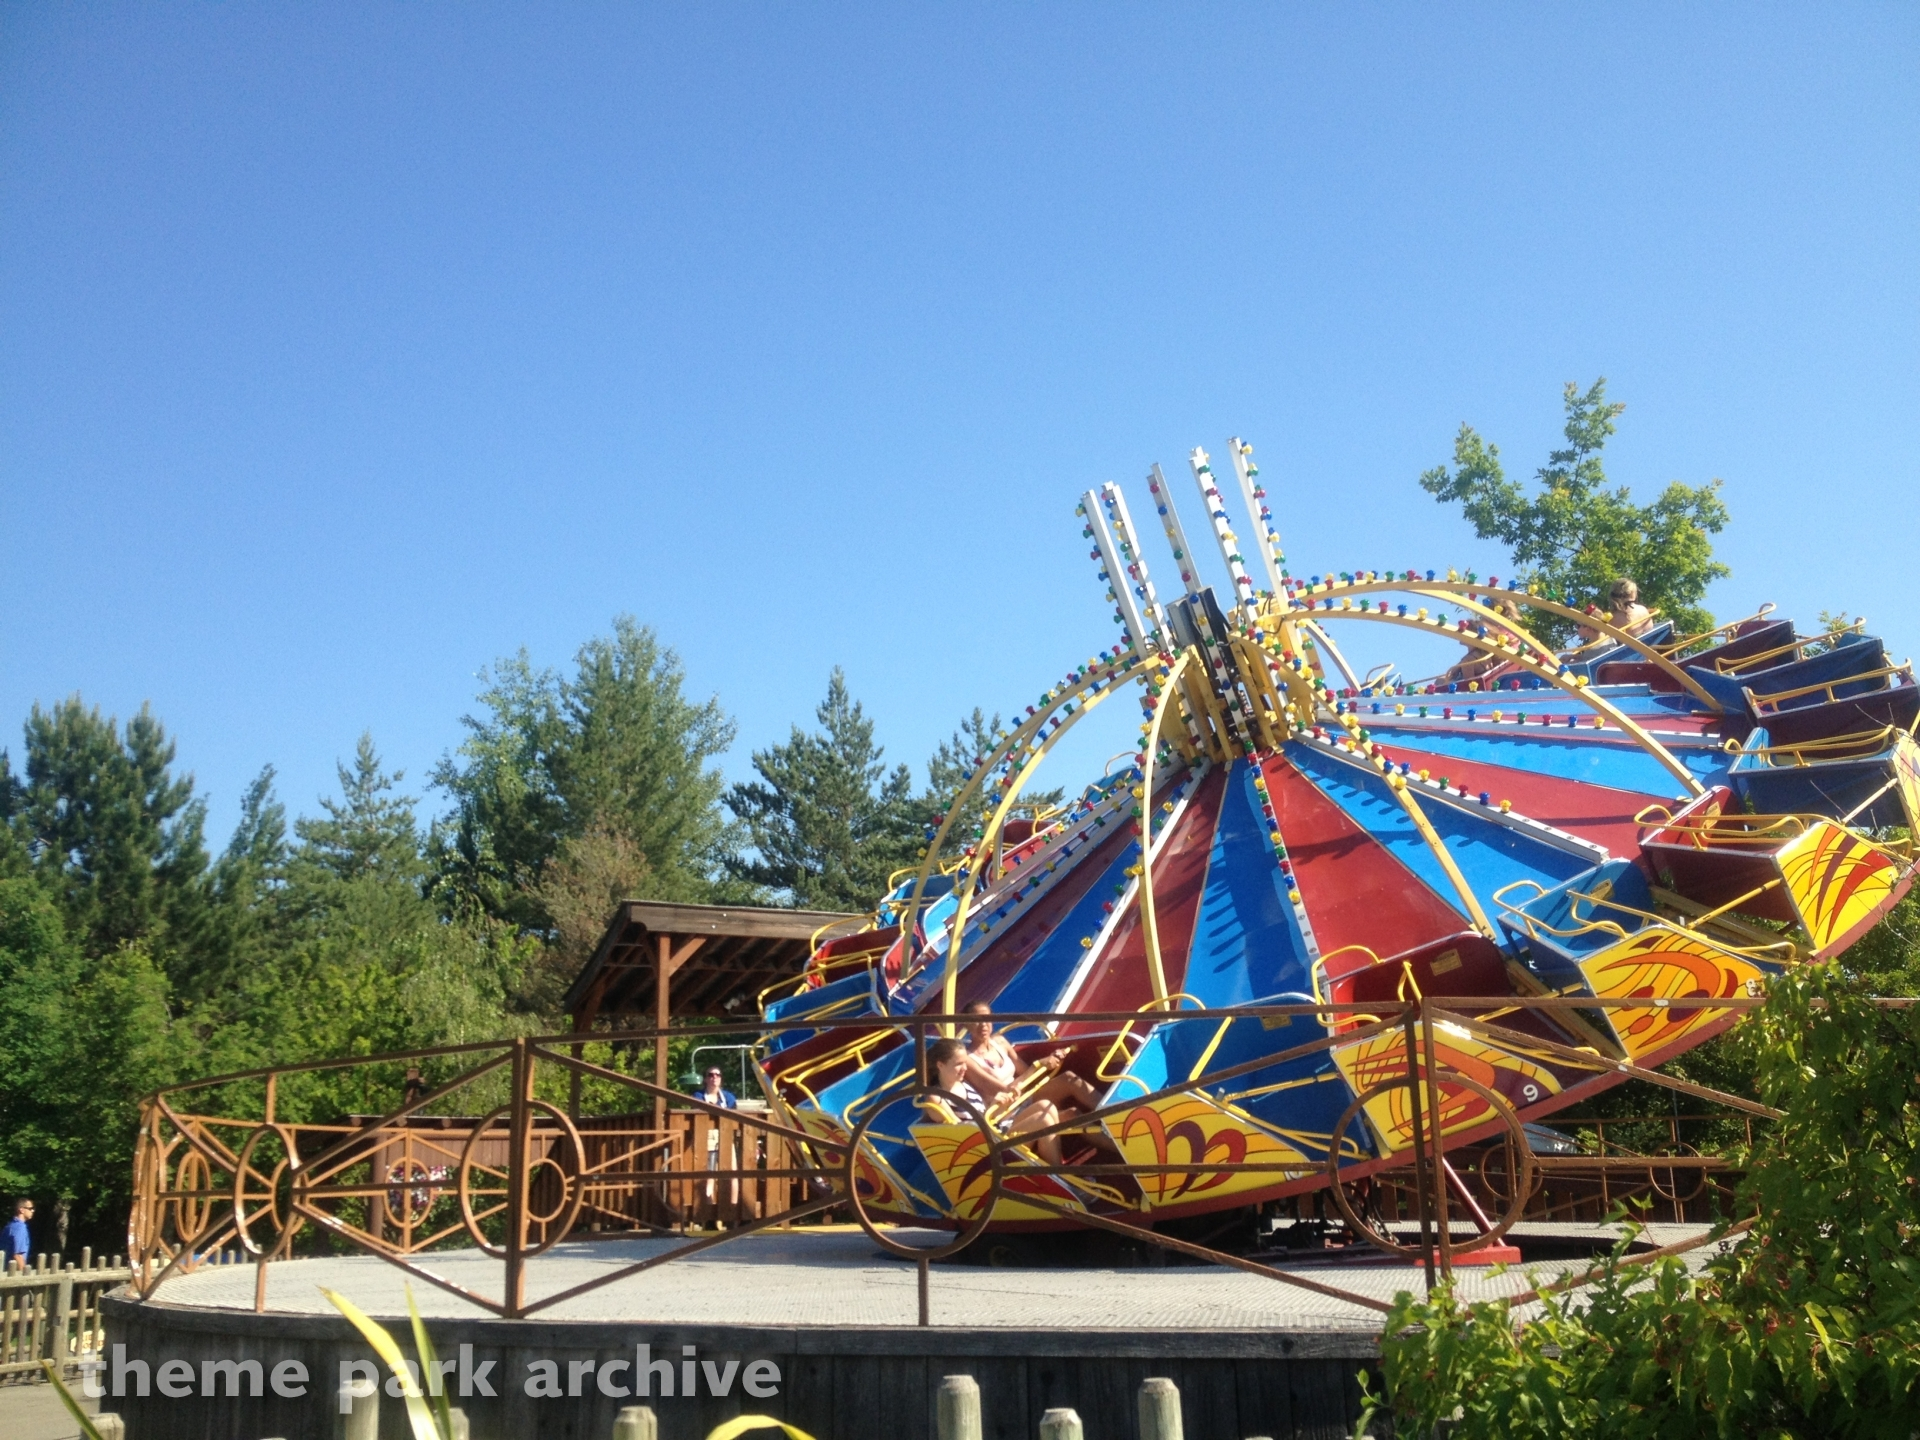 Super Roundup at Silverwood Theme Park and Boulder Beach